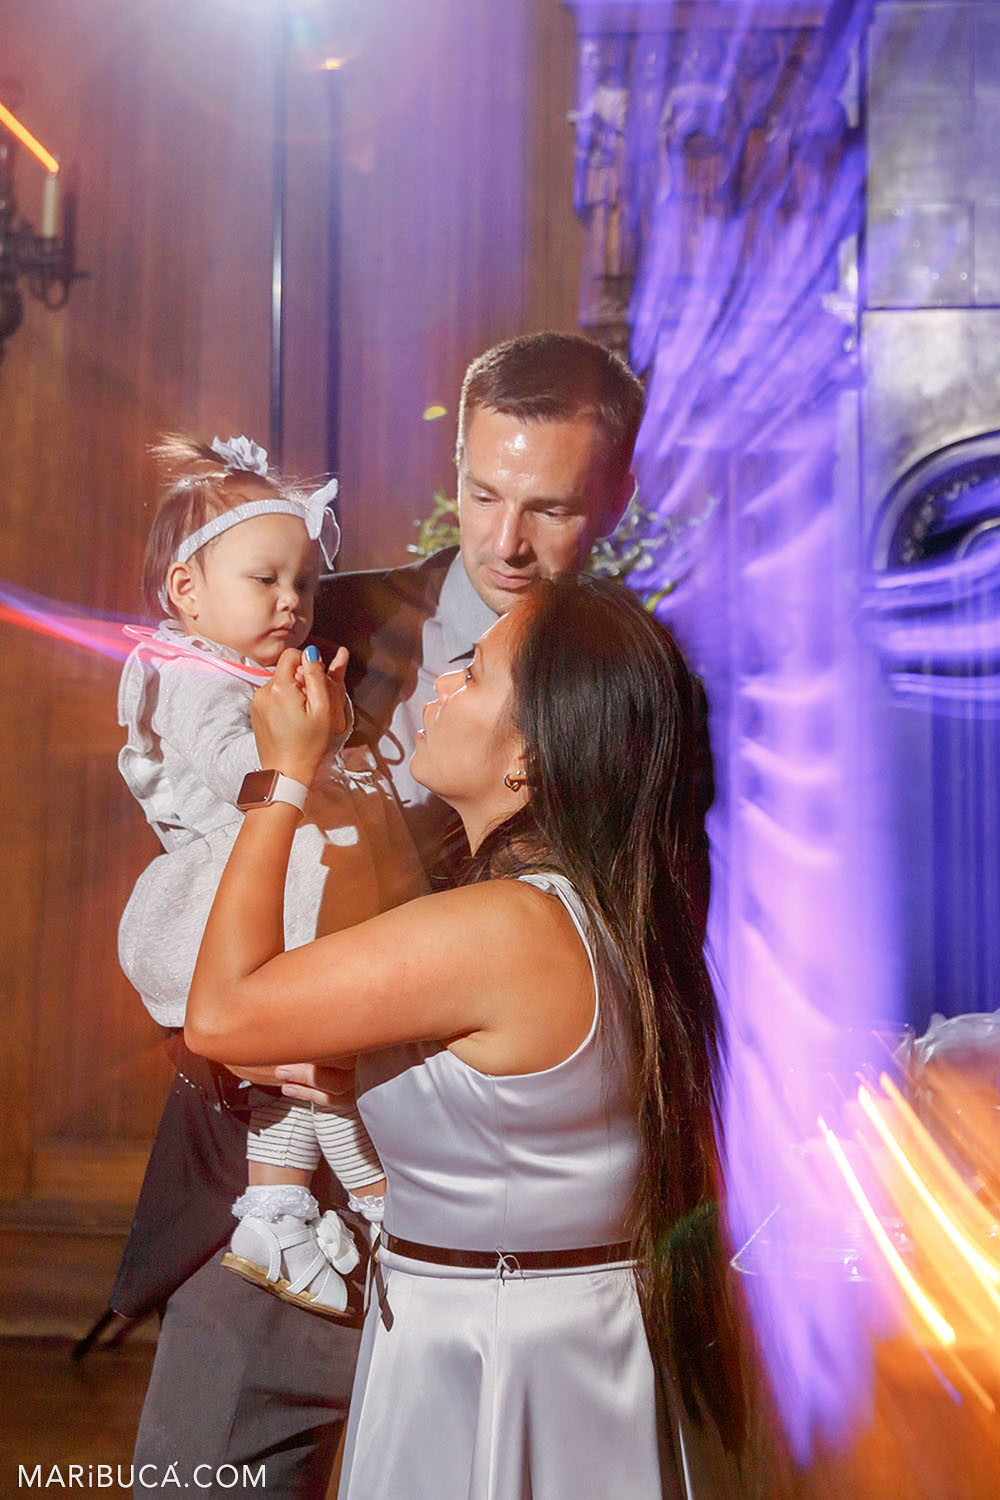 The bride and guests are dancing during the wedding reception surrounded orange and purple lights in the Great Hall, Kohl Mansion, Burlingame